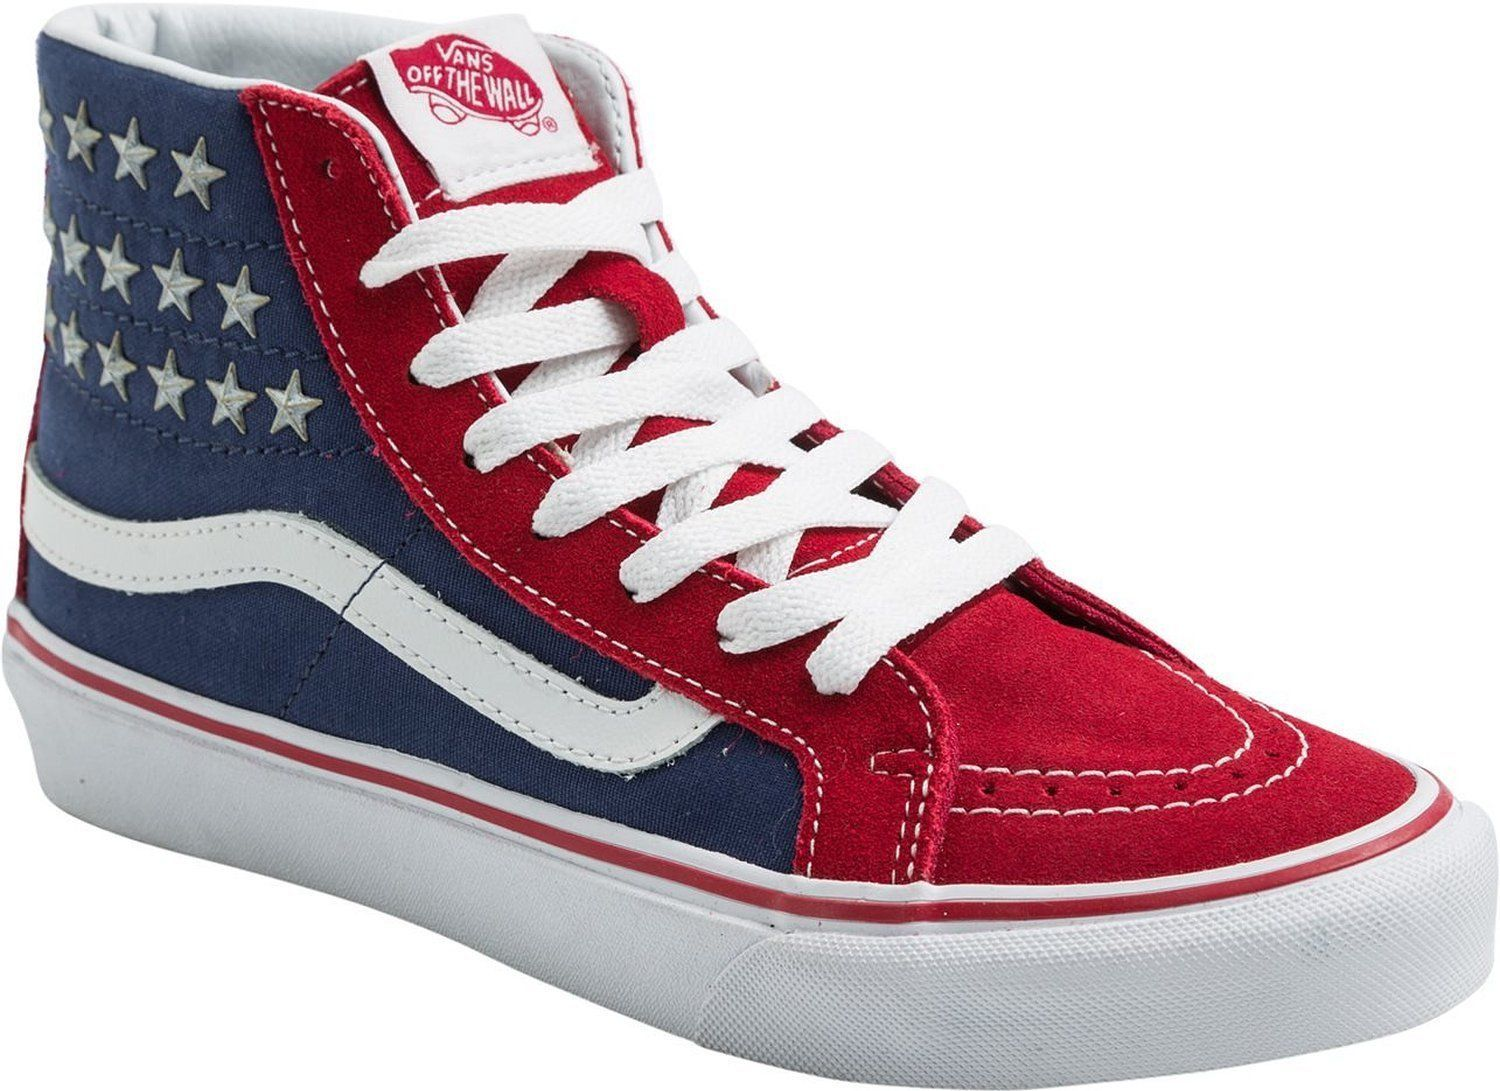 VANS Sk8-Hi Slim Studded Stars Sneakers Shoes American Flag Red Blue NEW  70 f607c4c5c